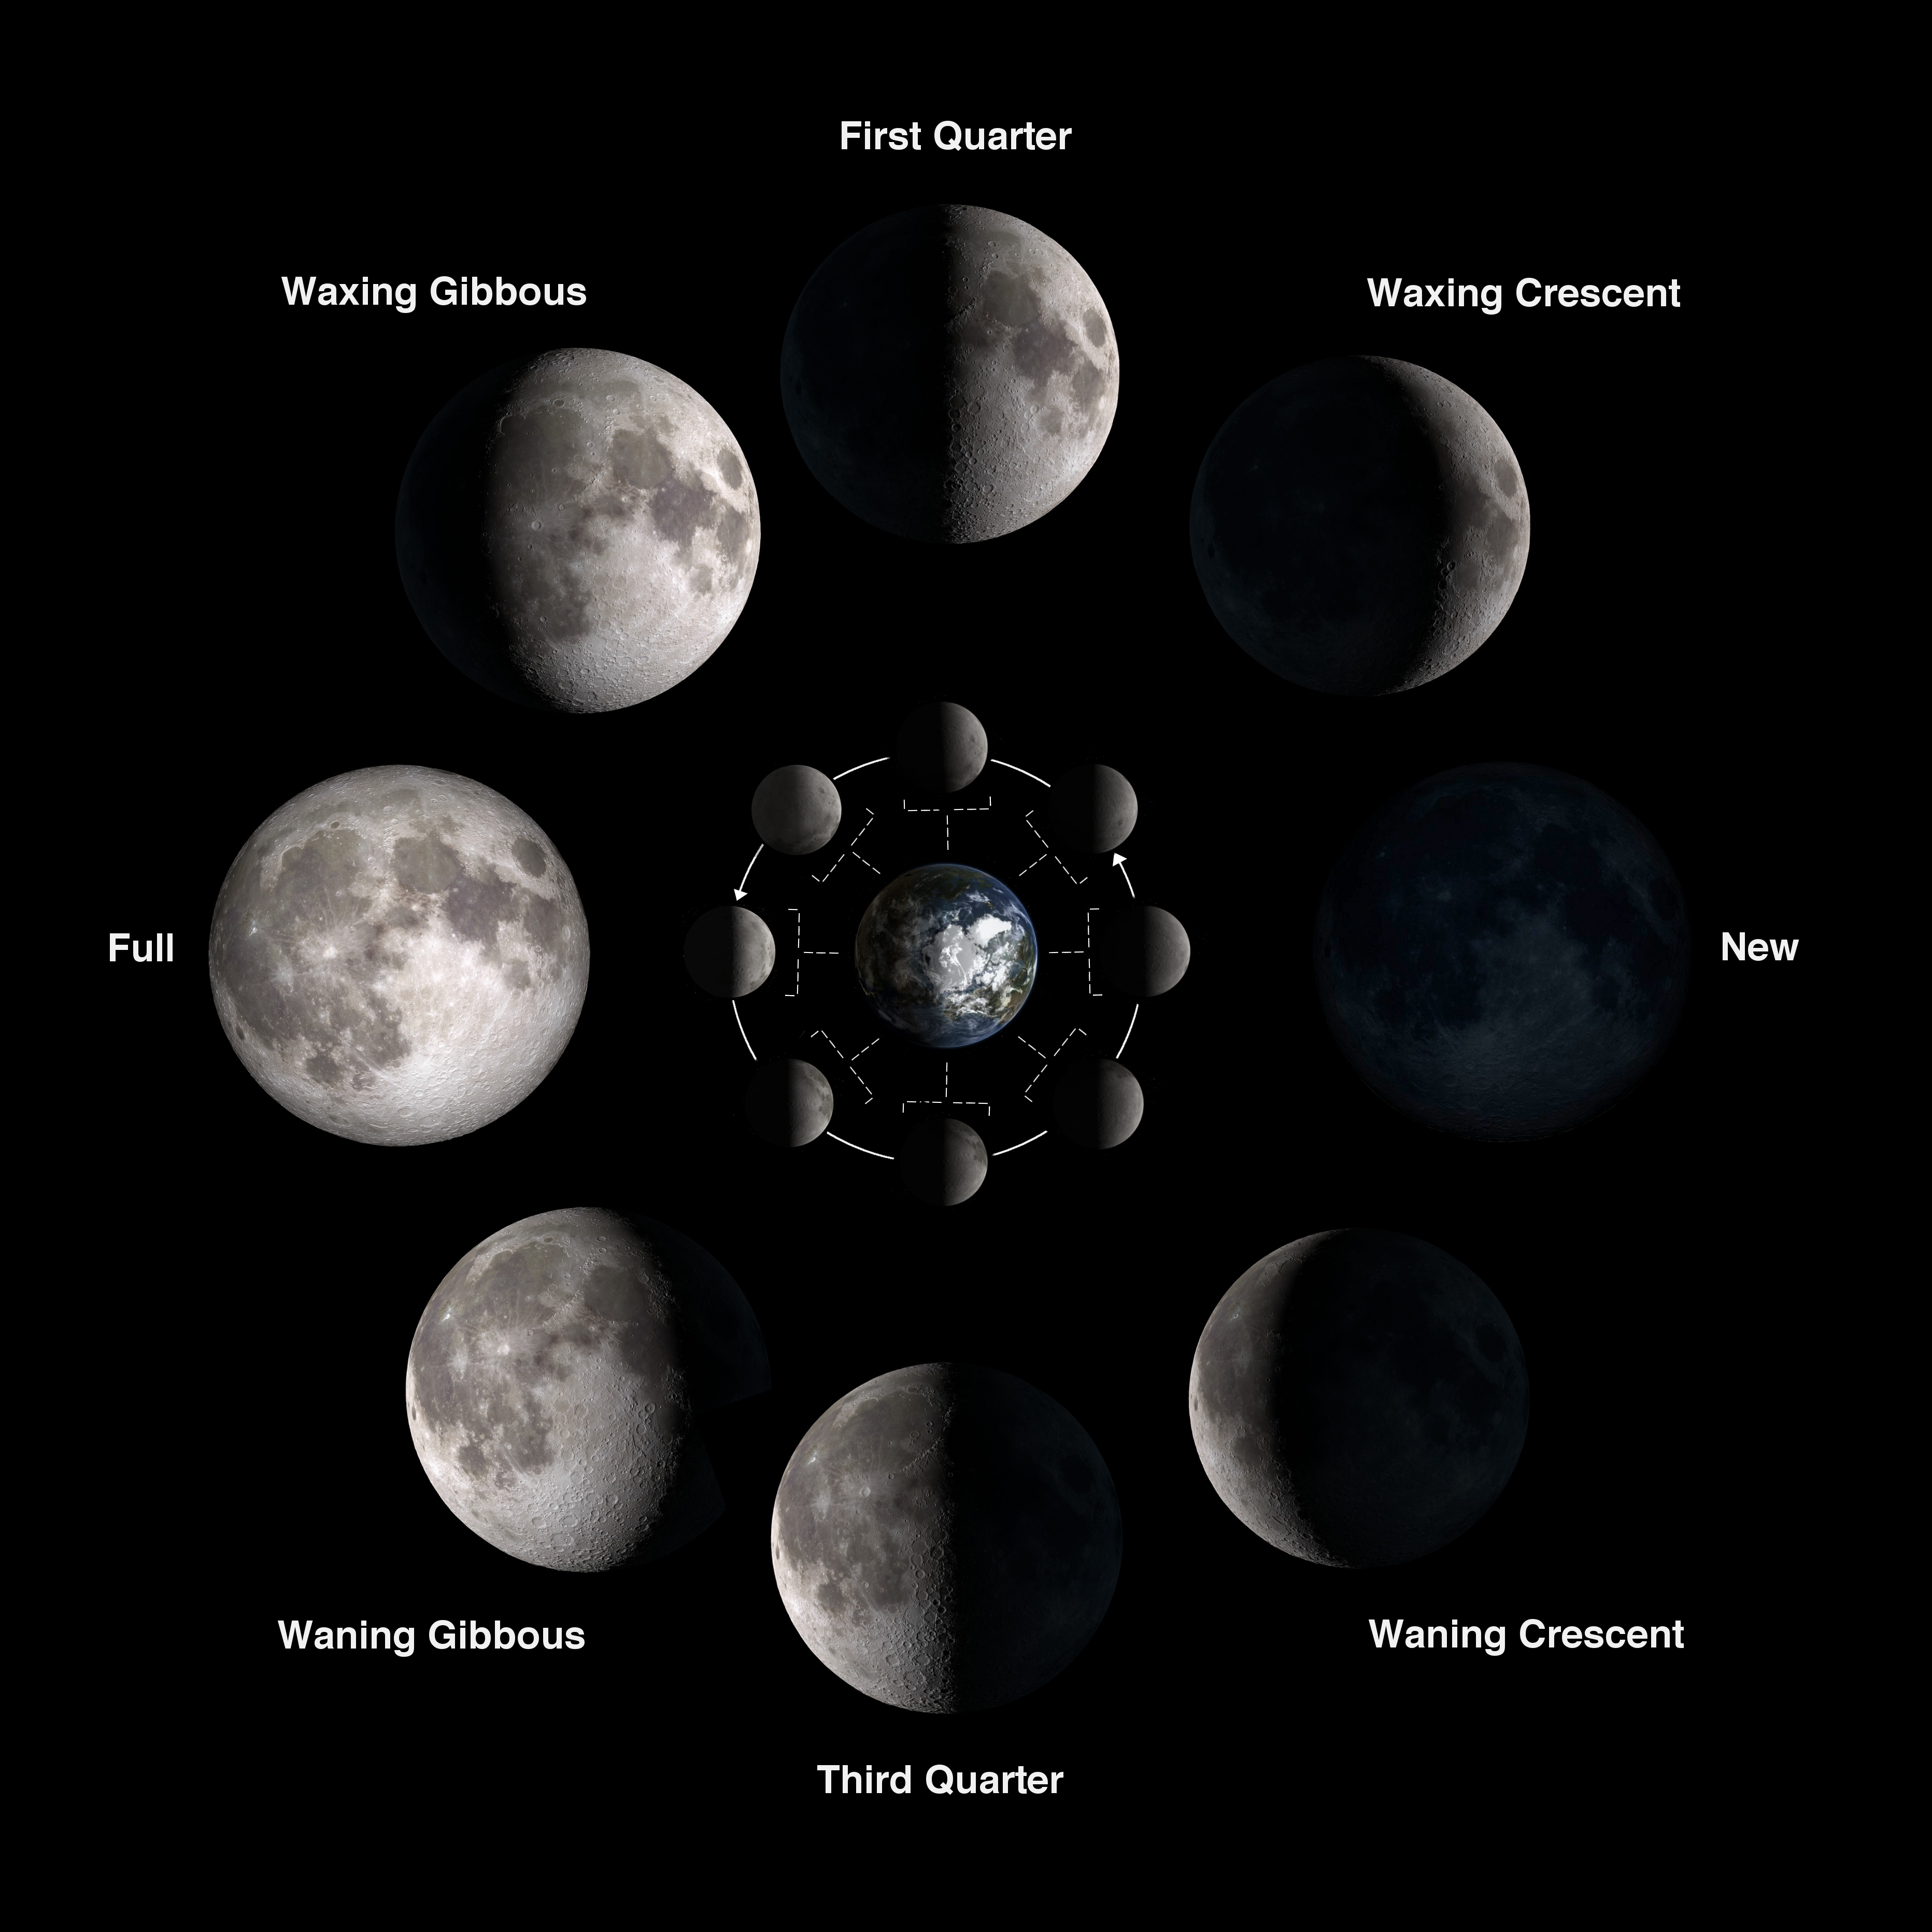 Chart showing the different phases of the Moon